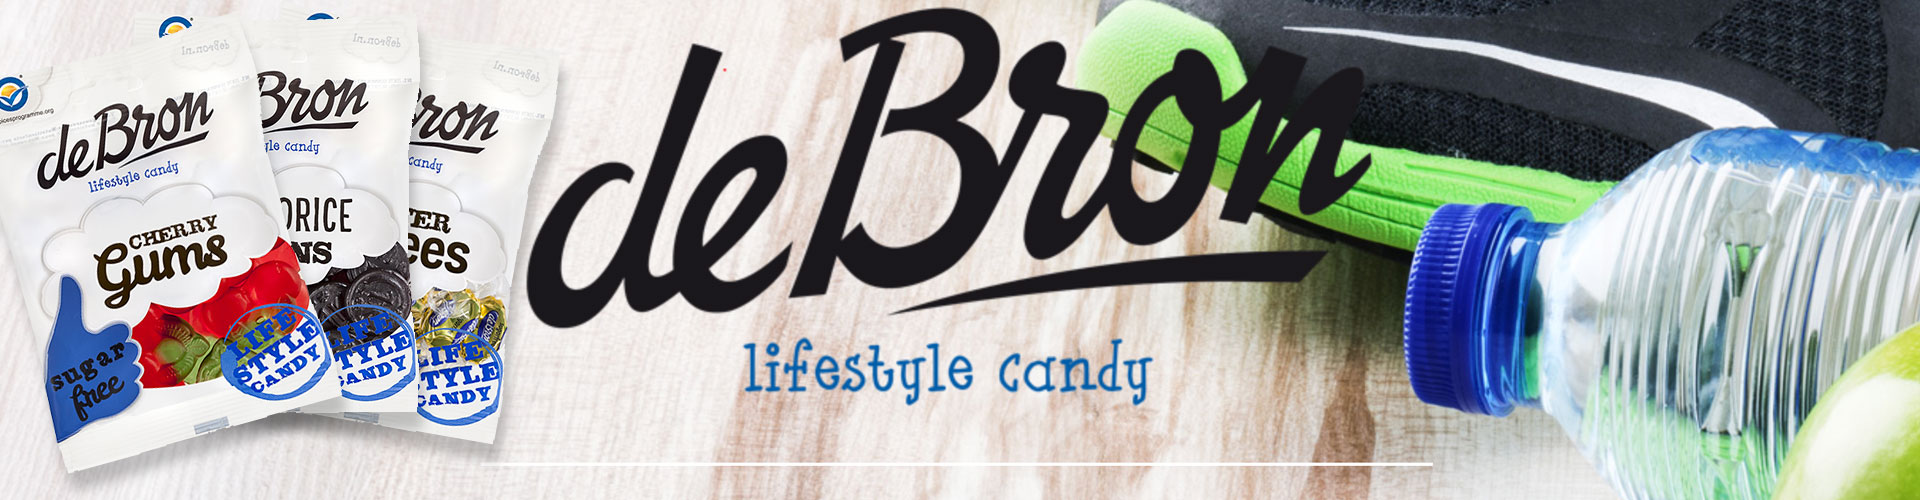 Lifestyle-by-Debron-wp-banner